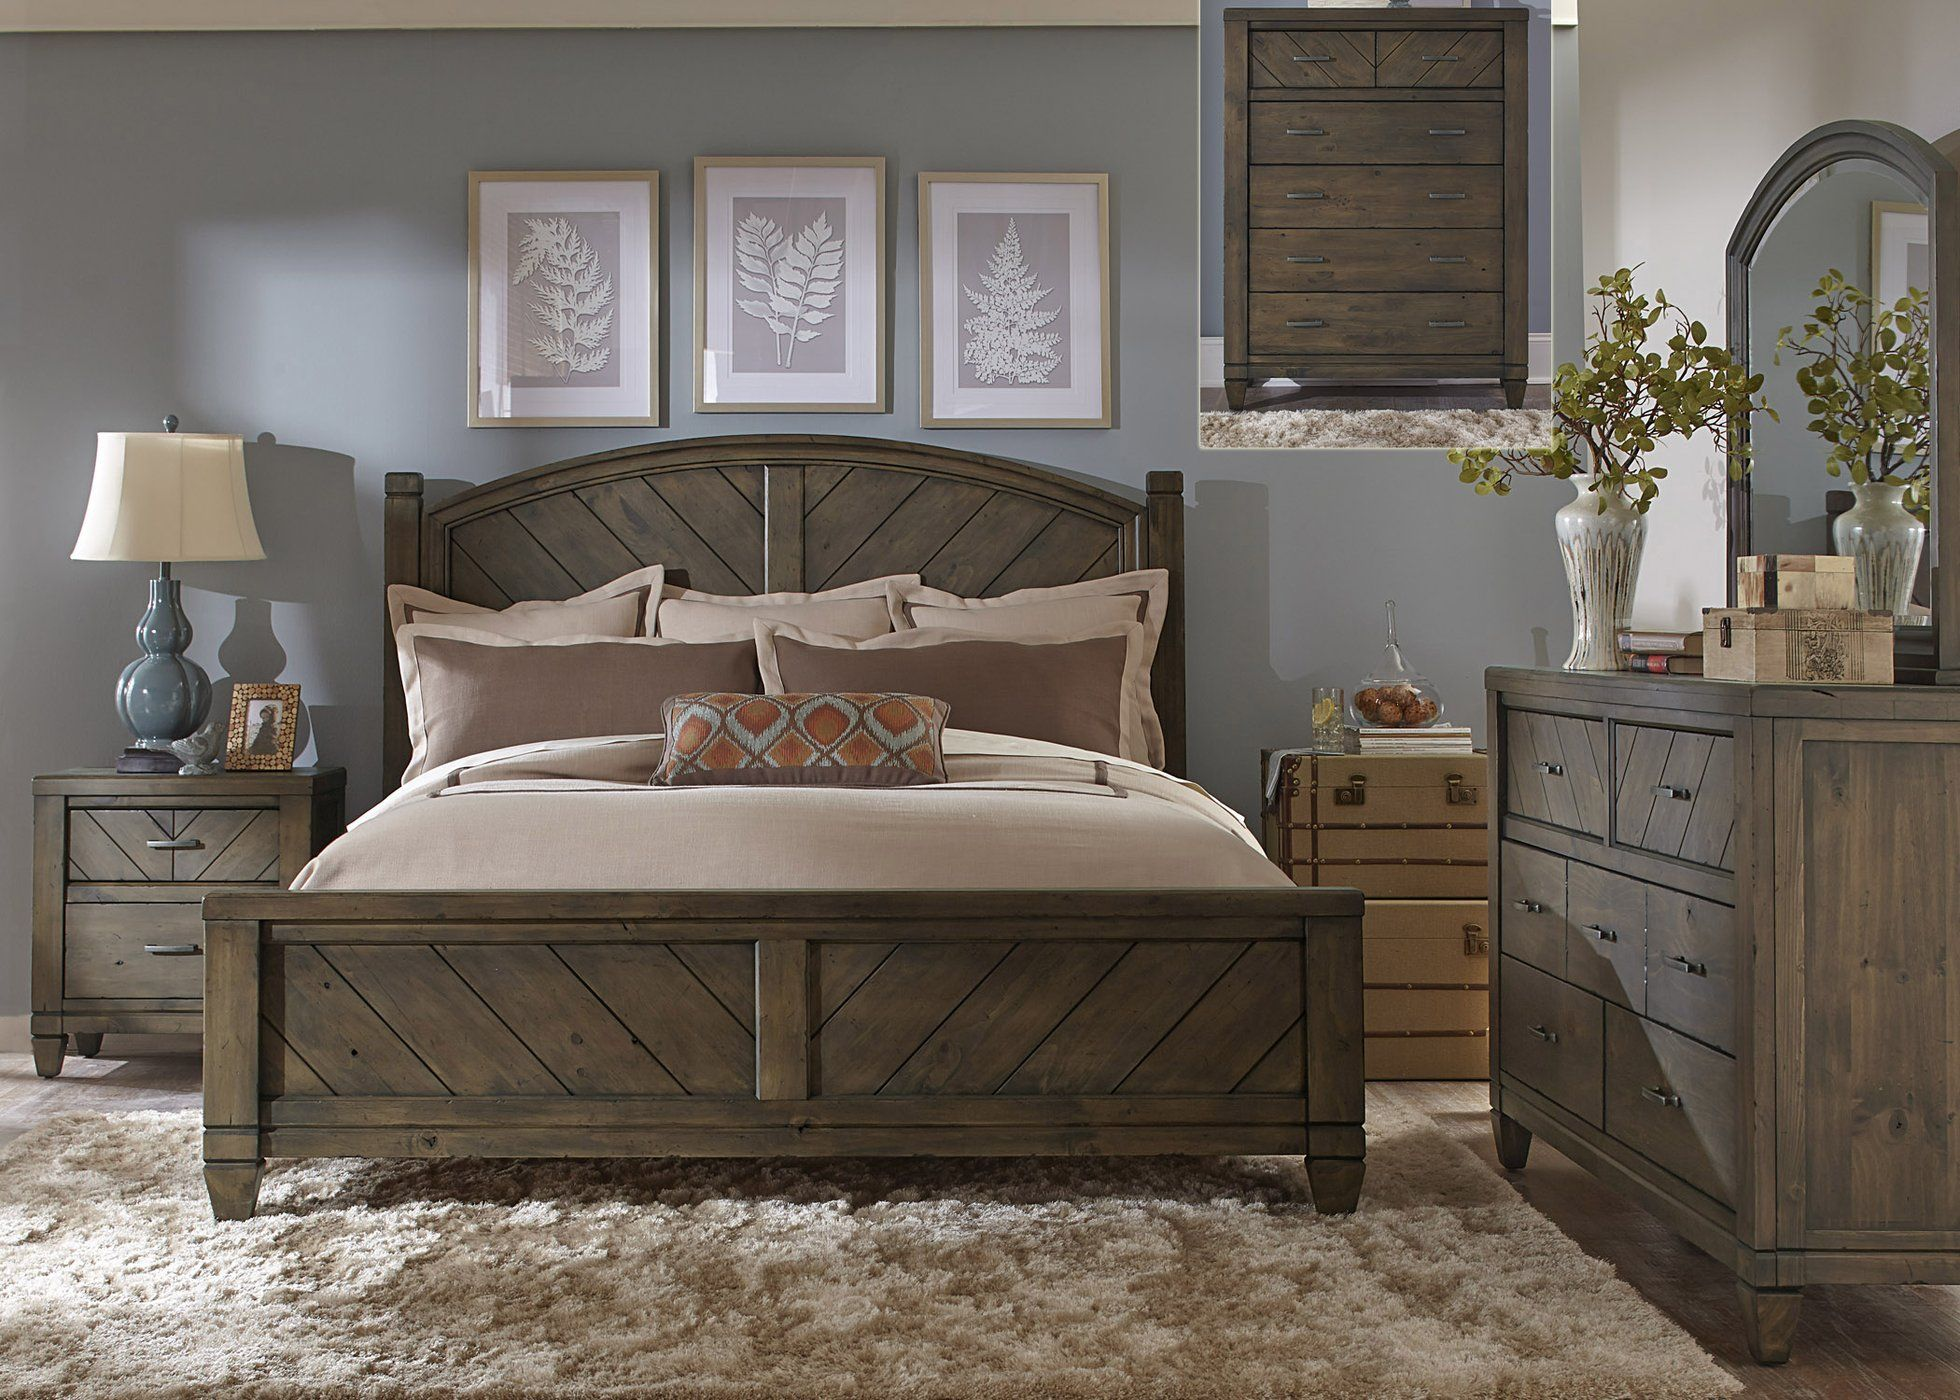 Modern Country Bedroom Queen Poster 5 Piece Bedroom Set ...